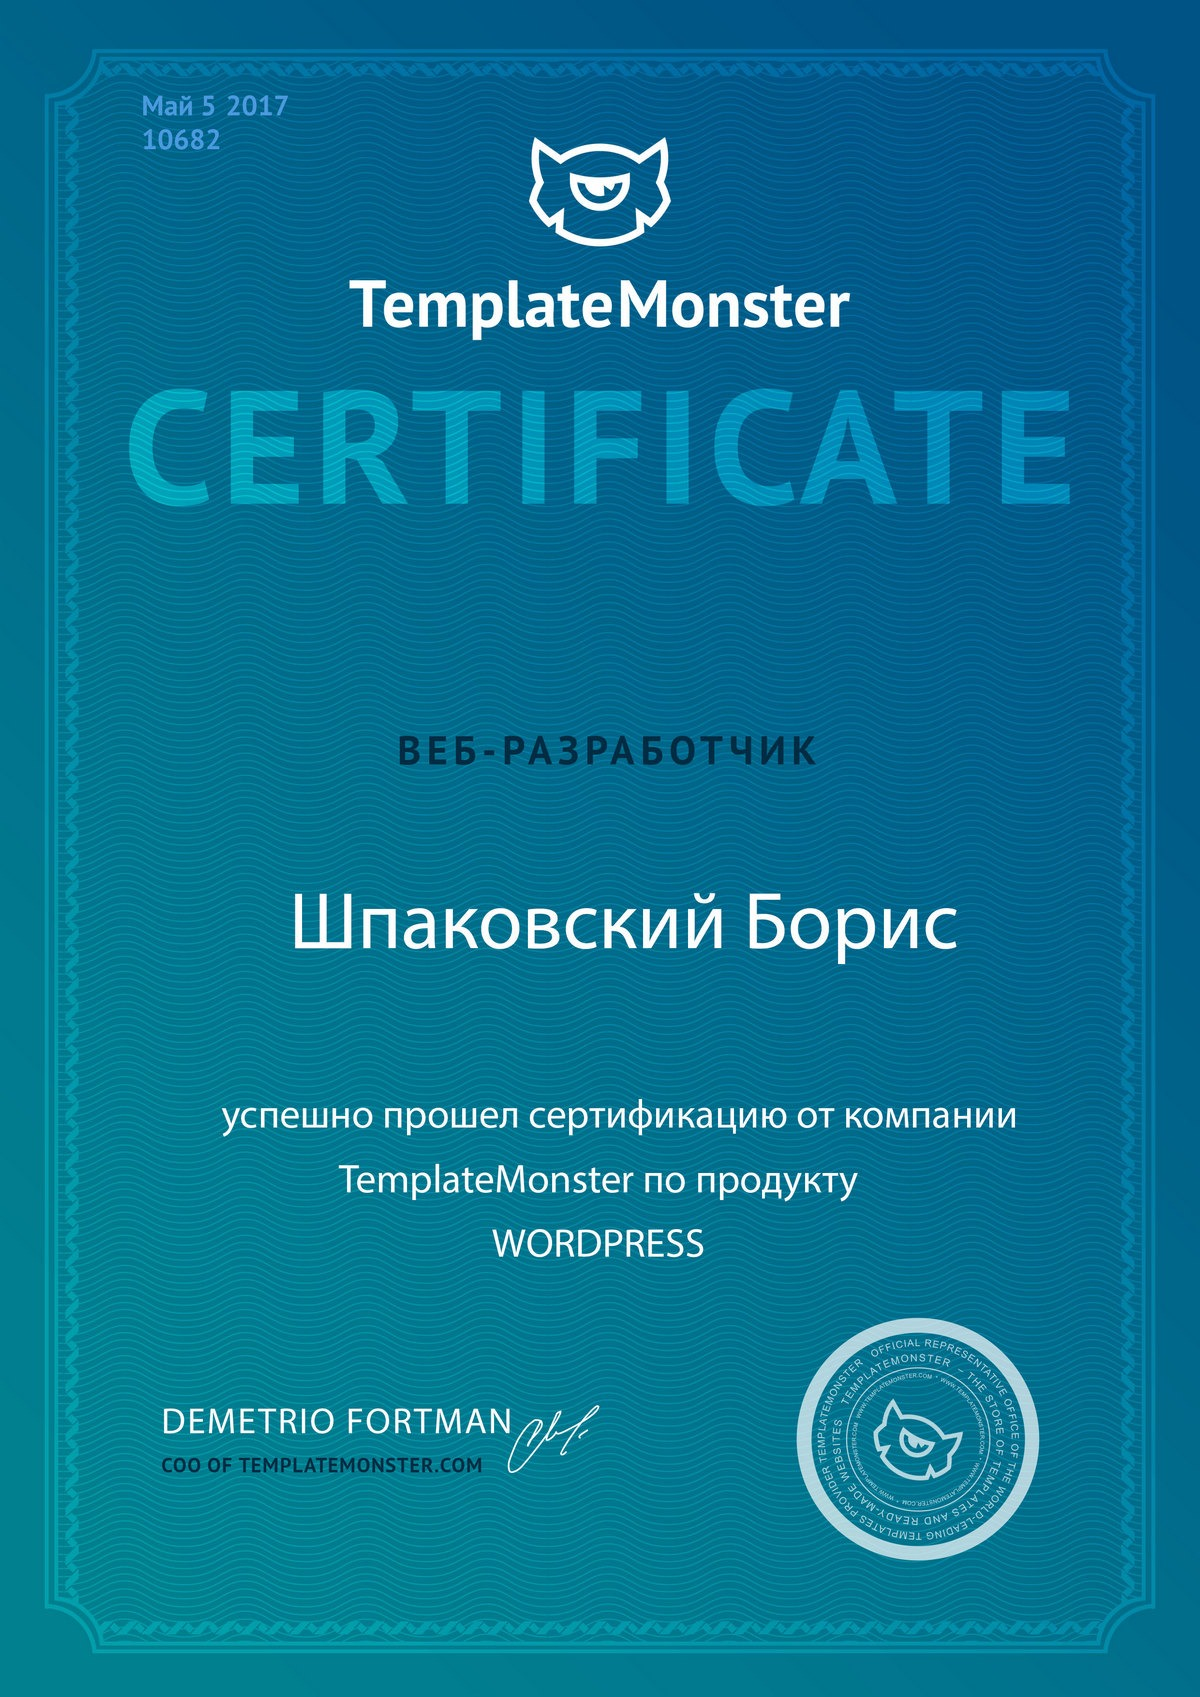 Templatemonster — разработчик WordPress